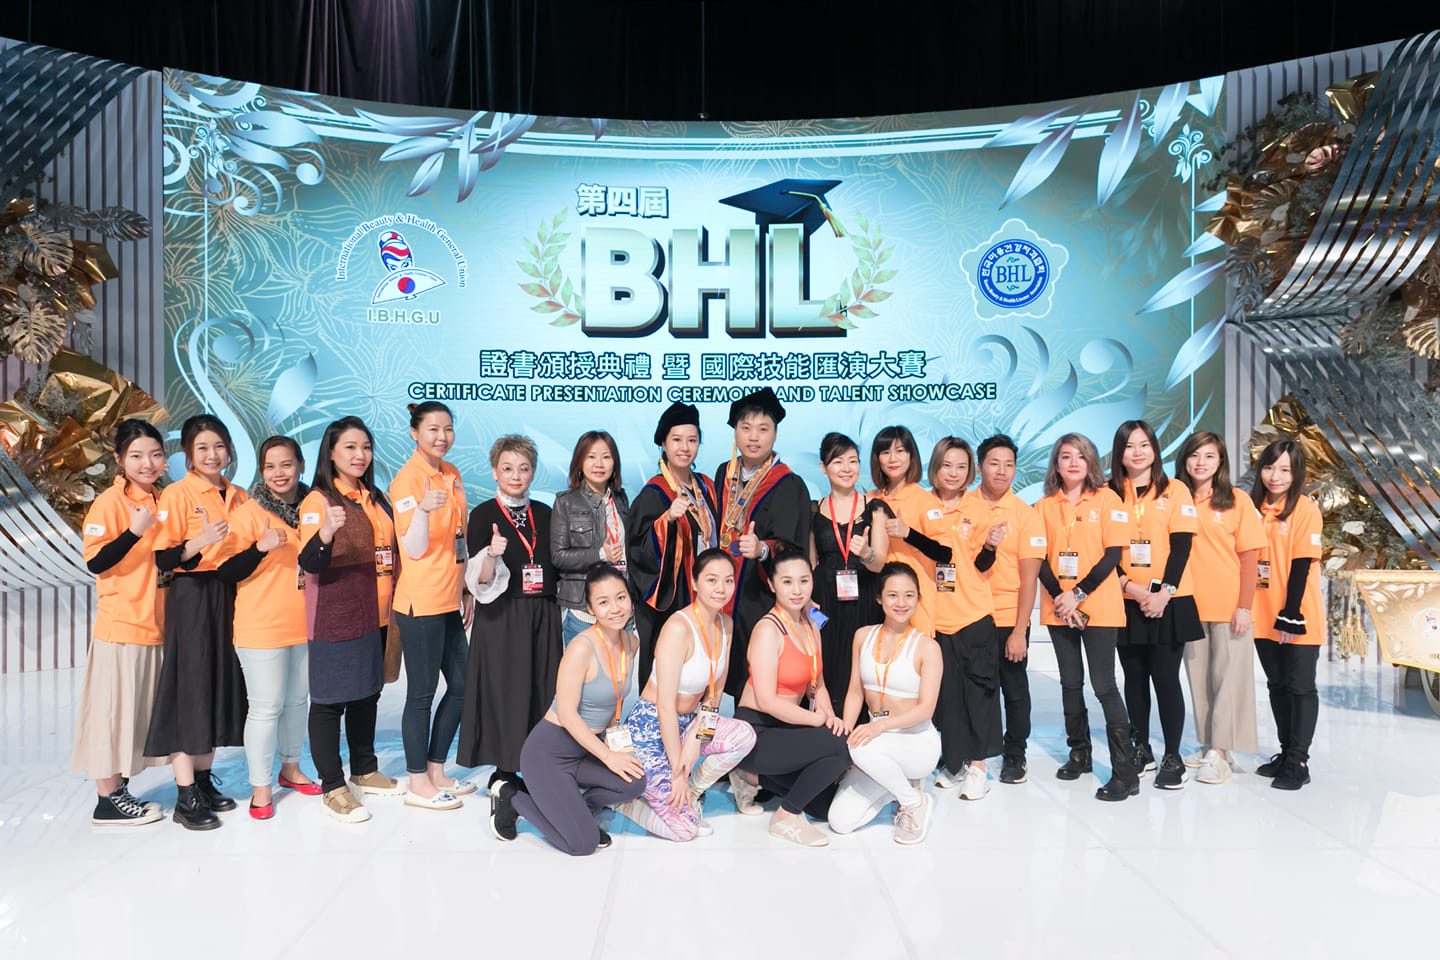 luster beauty international education and training academy iiistylecom bhl ibhgu certificate presentation ceremony and talent showcase 1